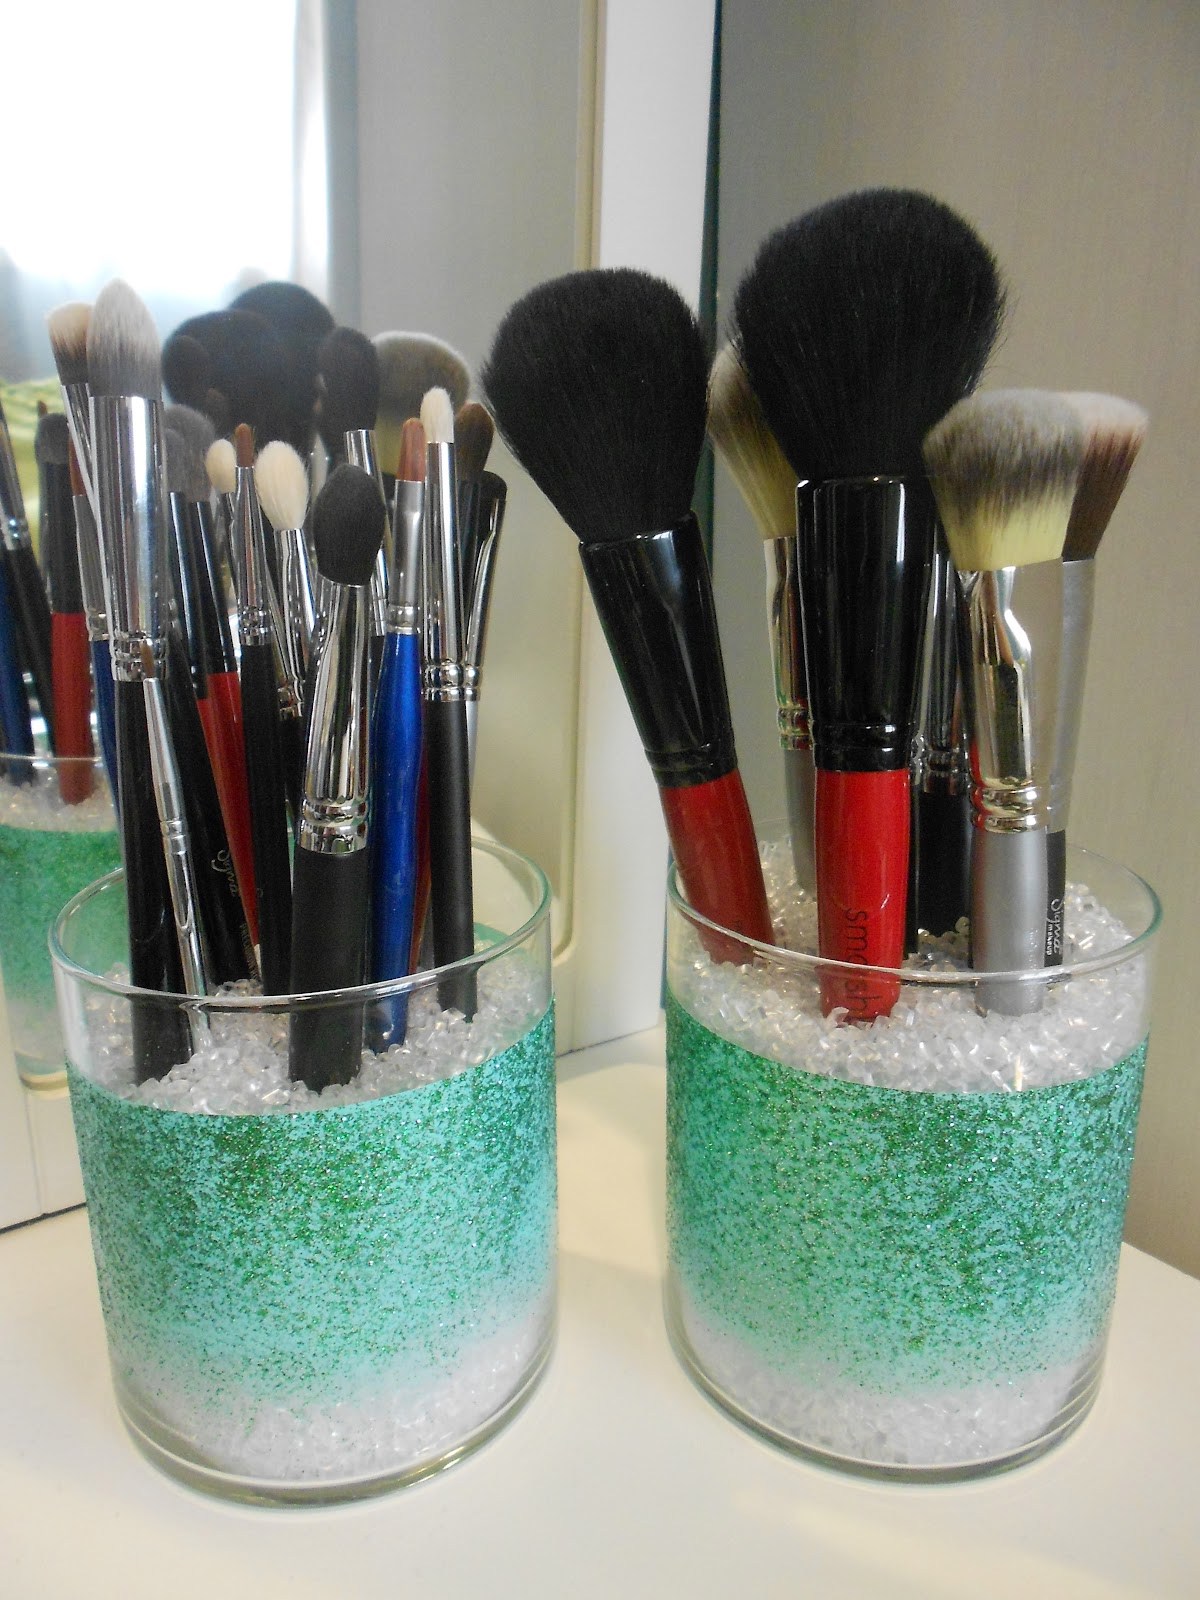 Make Up Brush Holders | Top Make Up Brushes